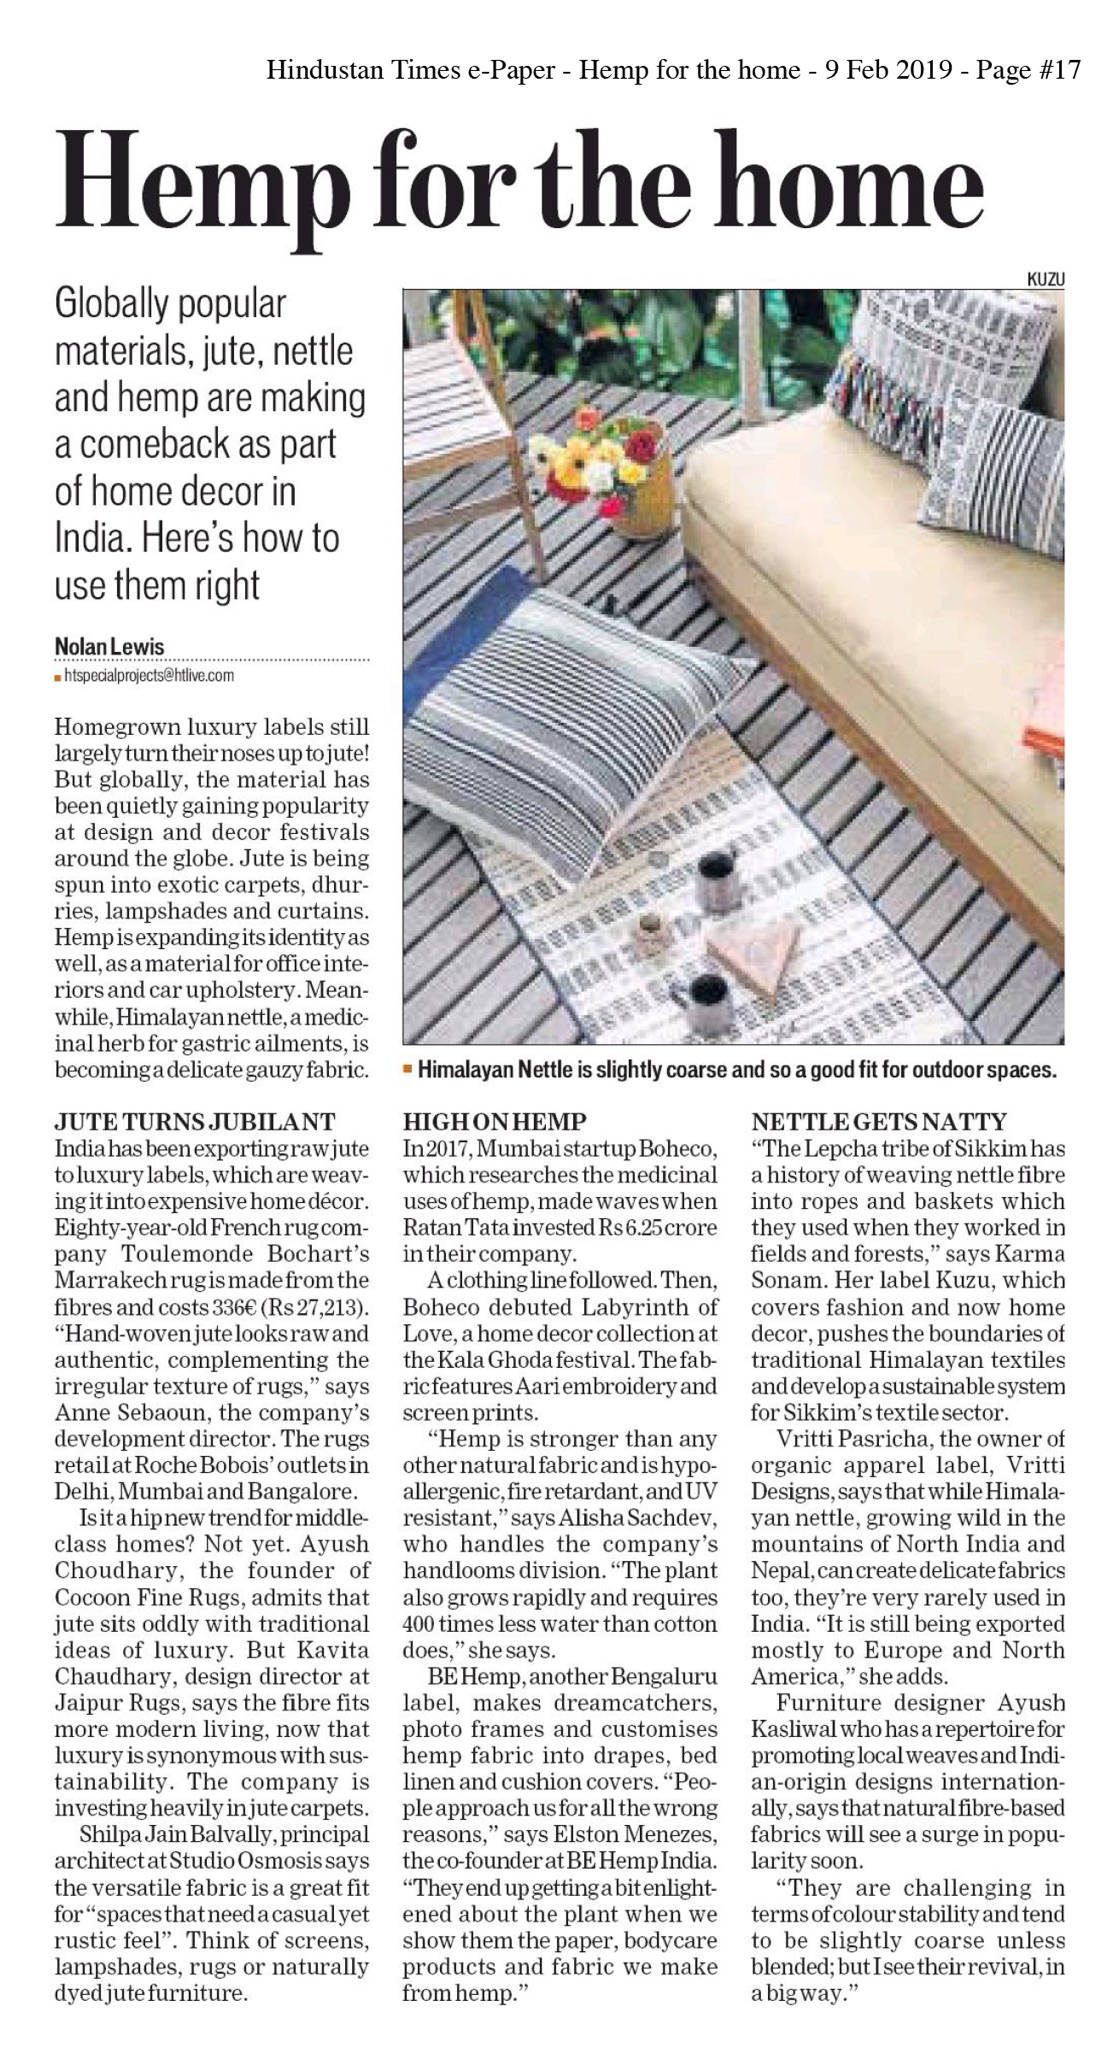 Hindustan Times – Hemp for the Home